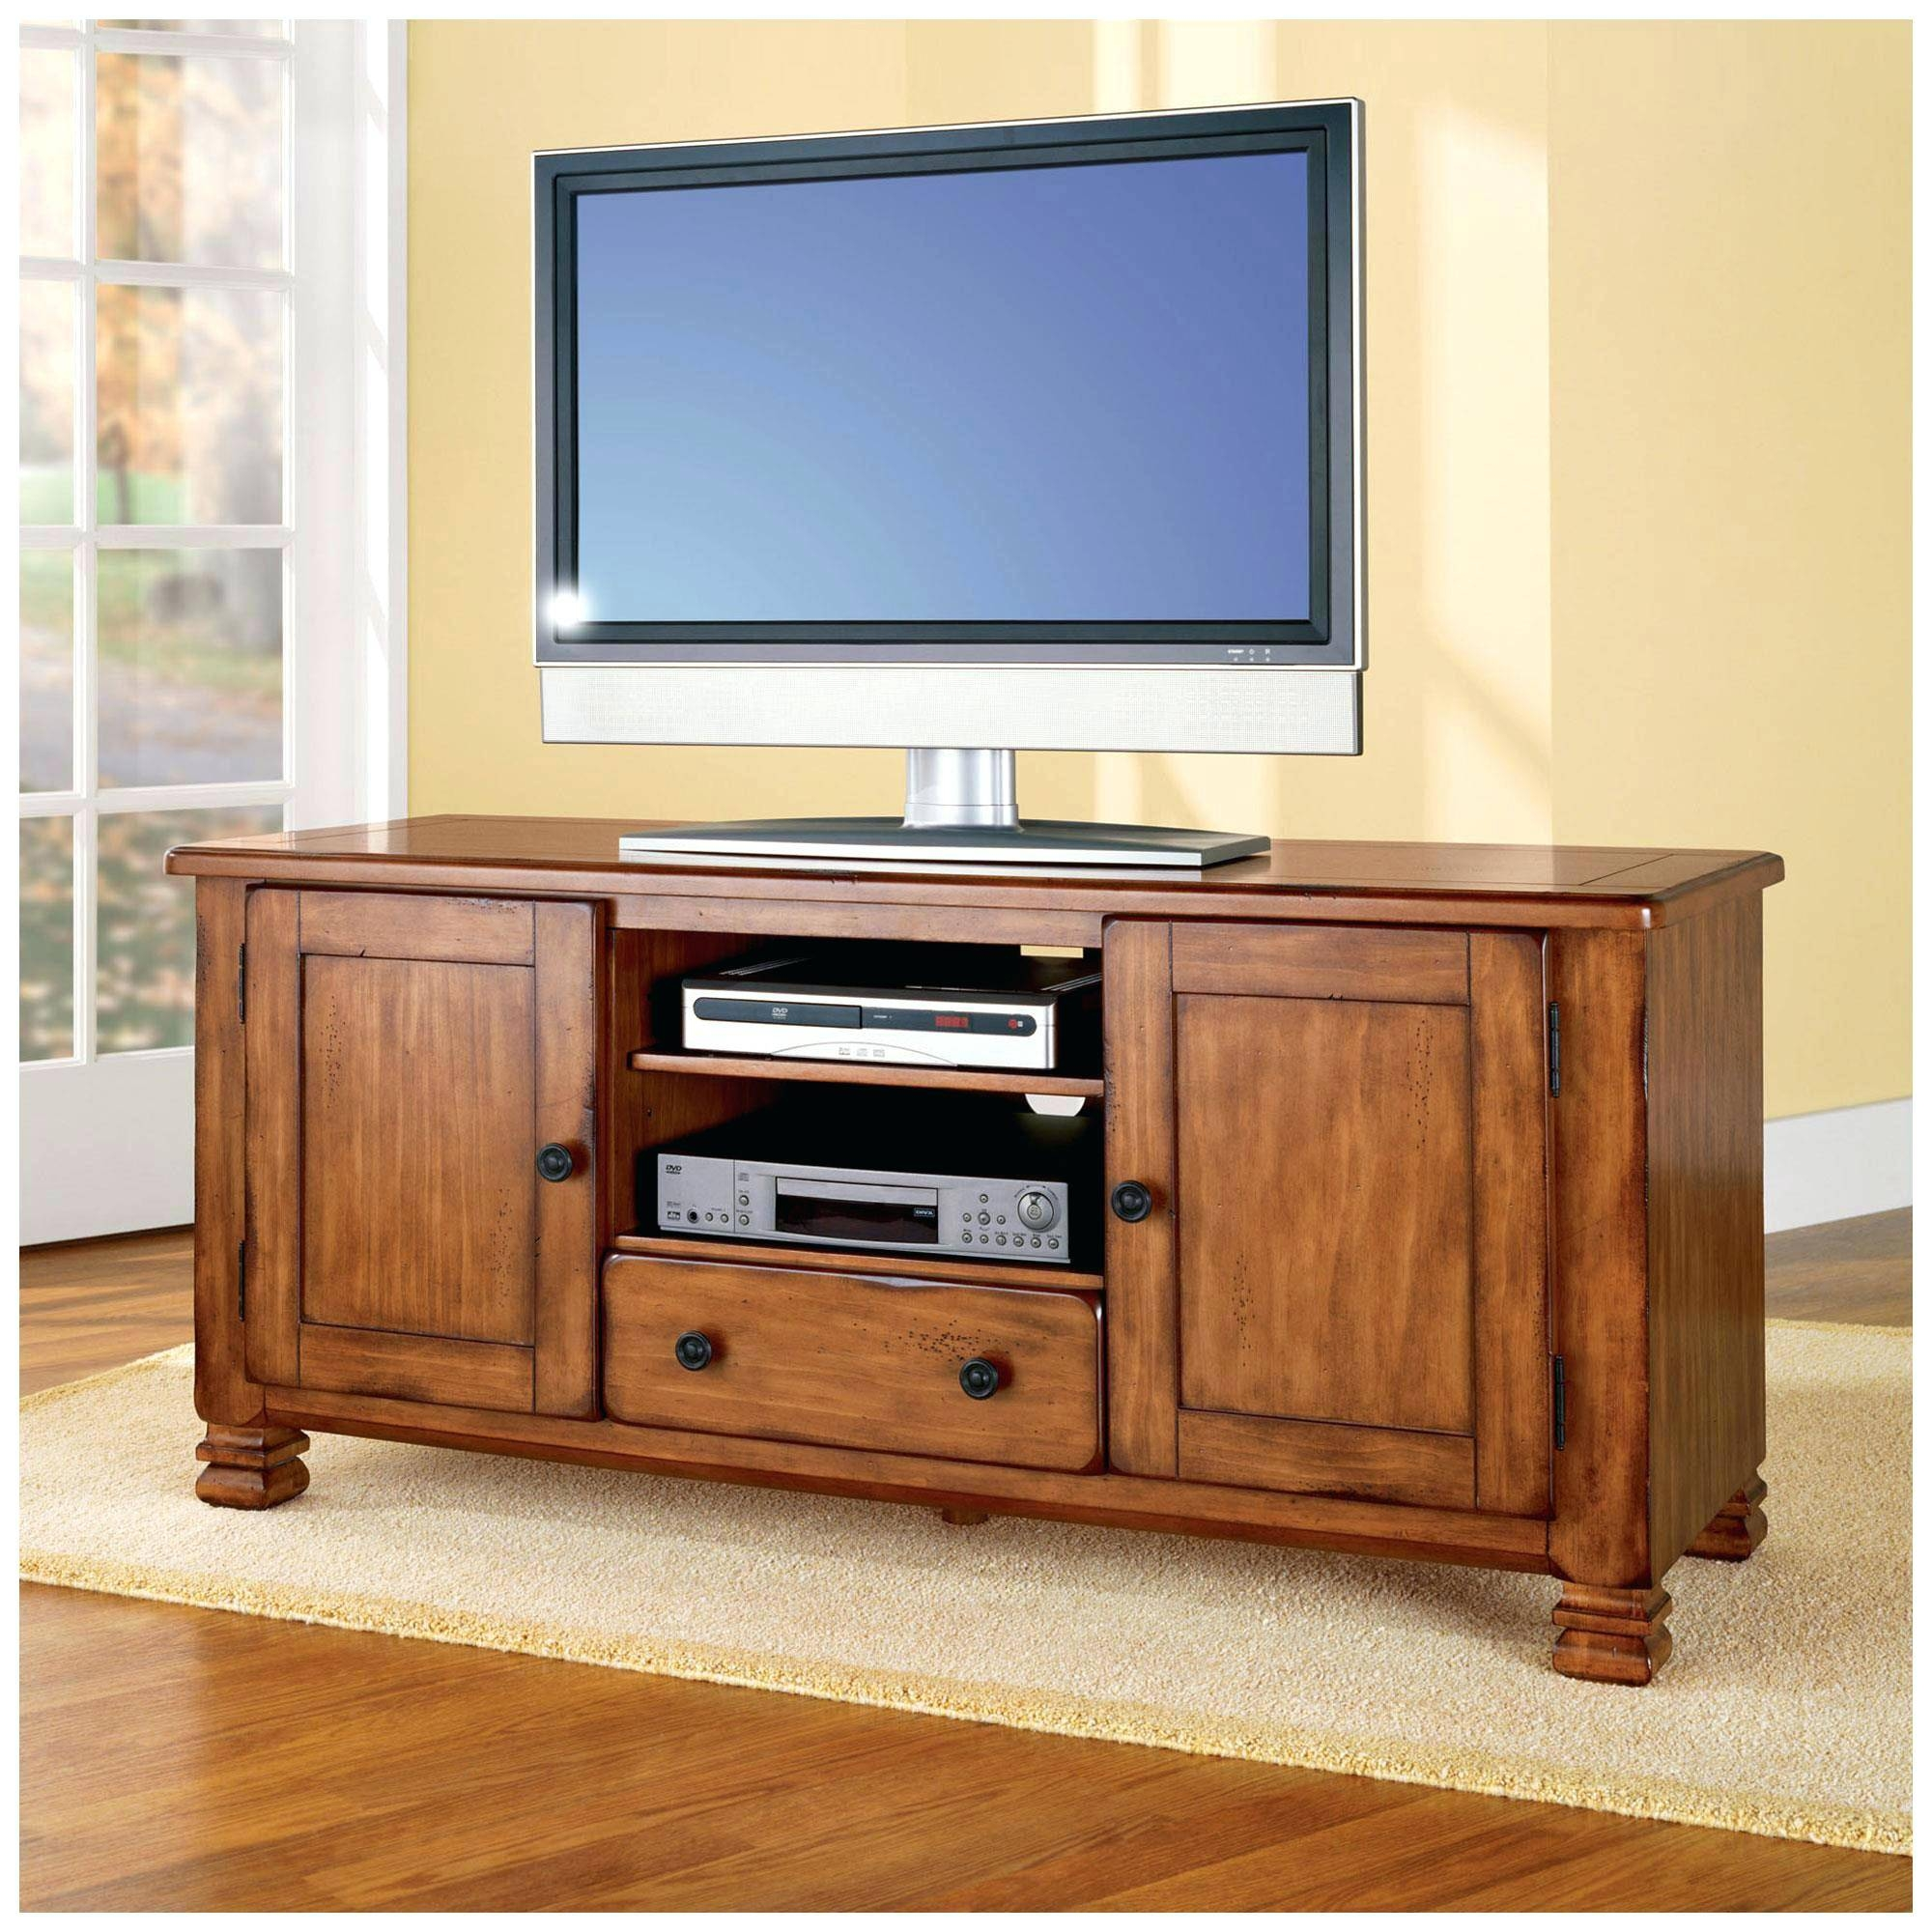 Tv Stand : Furniture Ideas 76 Ergonomic Large Size Of Tv Inside Corner Oak Tv Stands For Flat Screen (View 11 of 15)